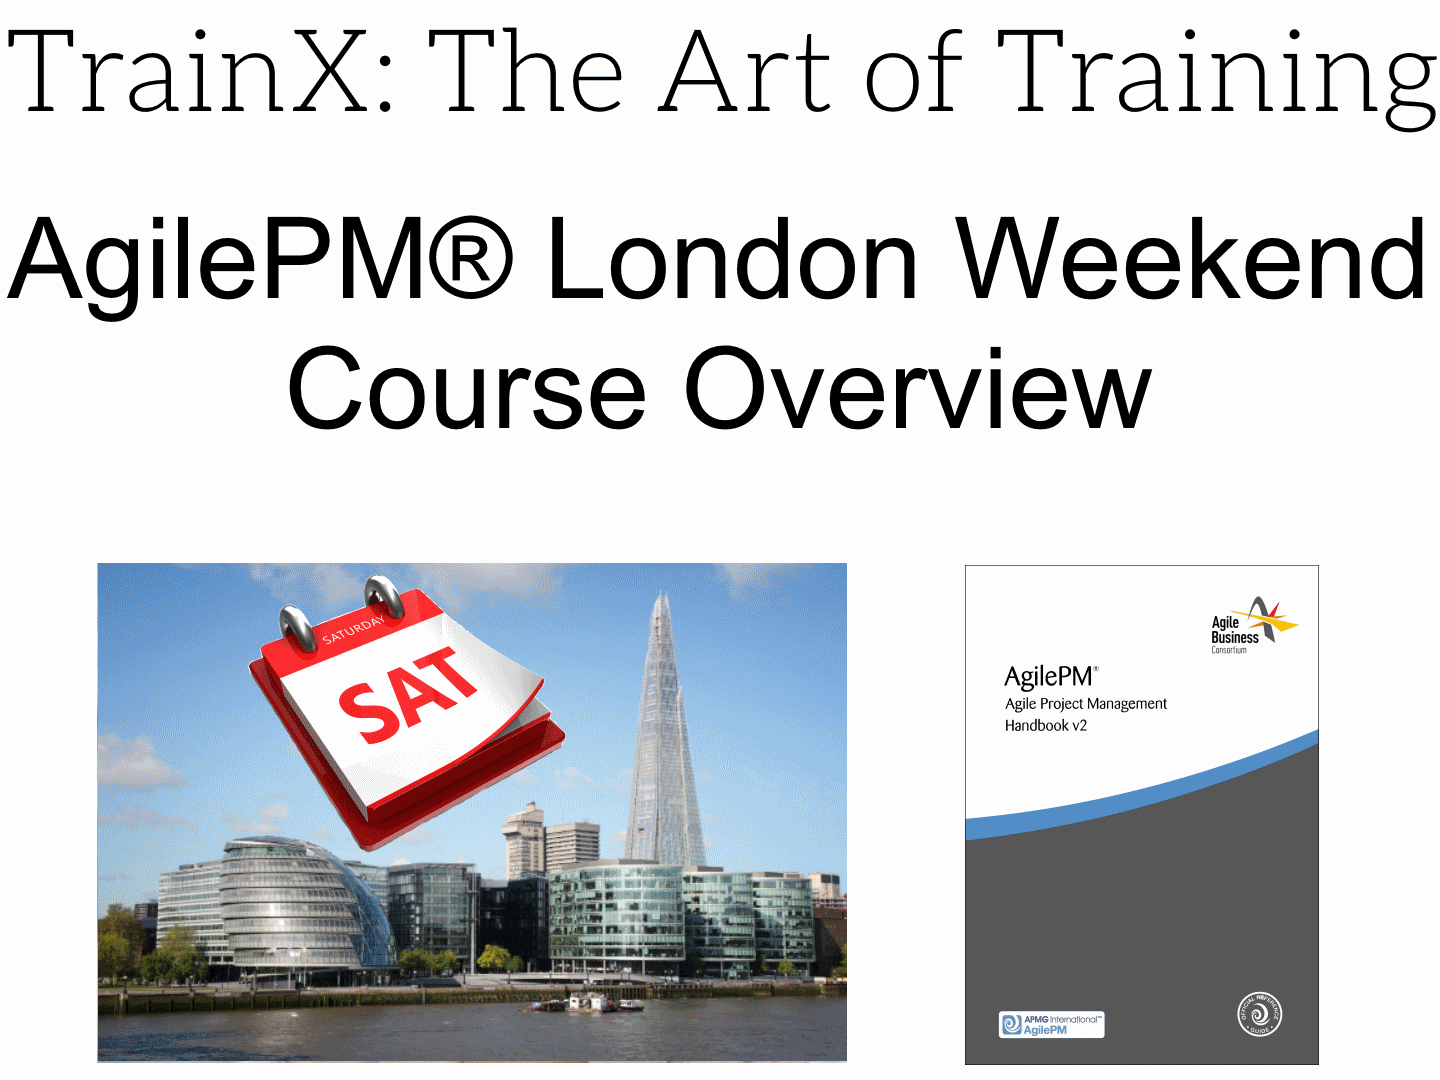 Agilepm London Weekend Course Agilepm Weekend London Training